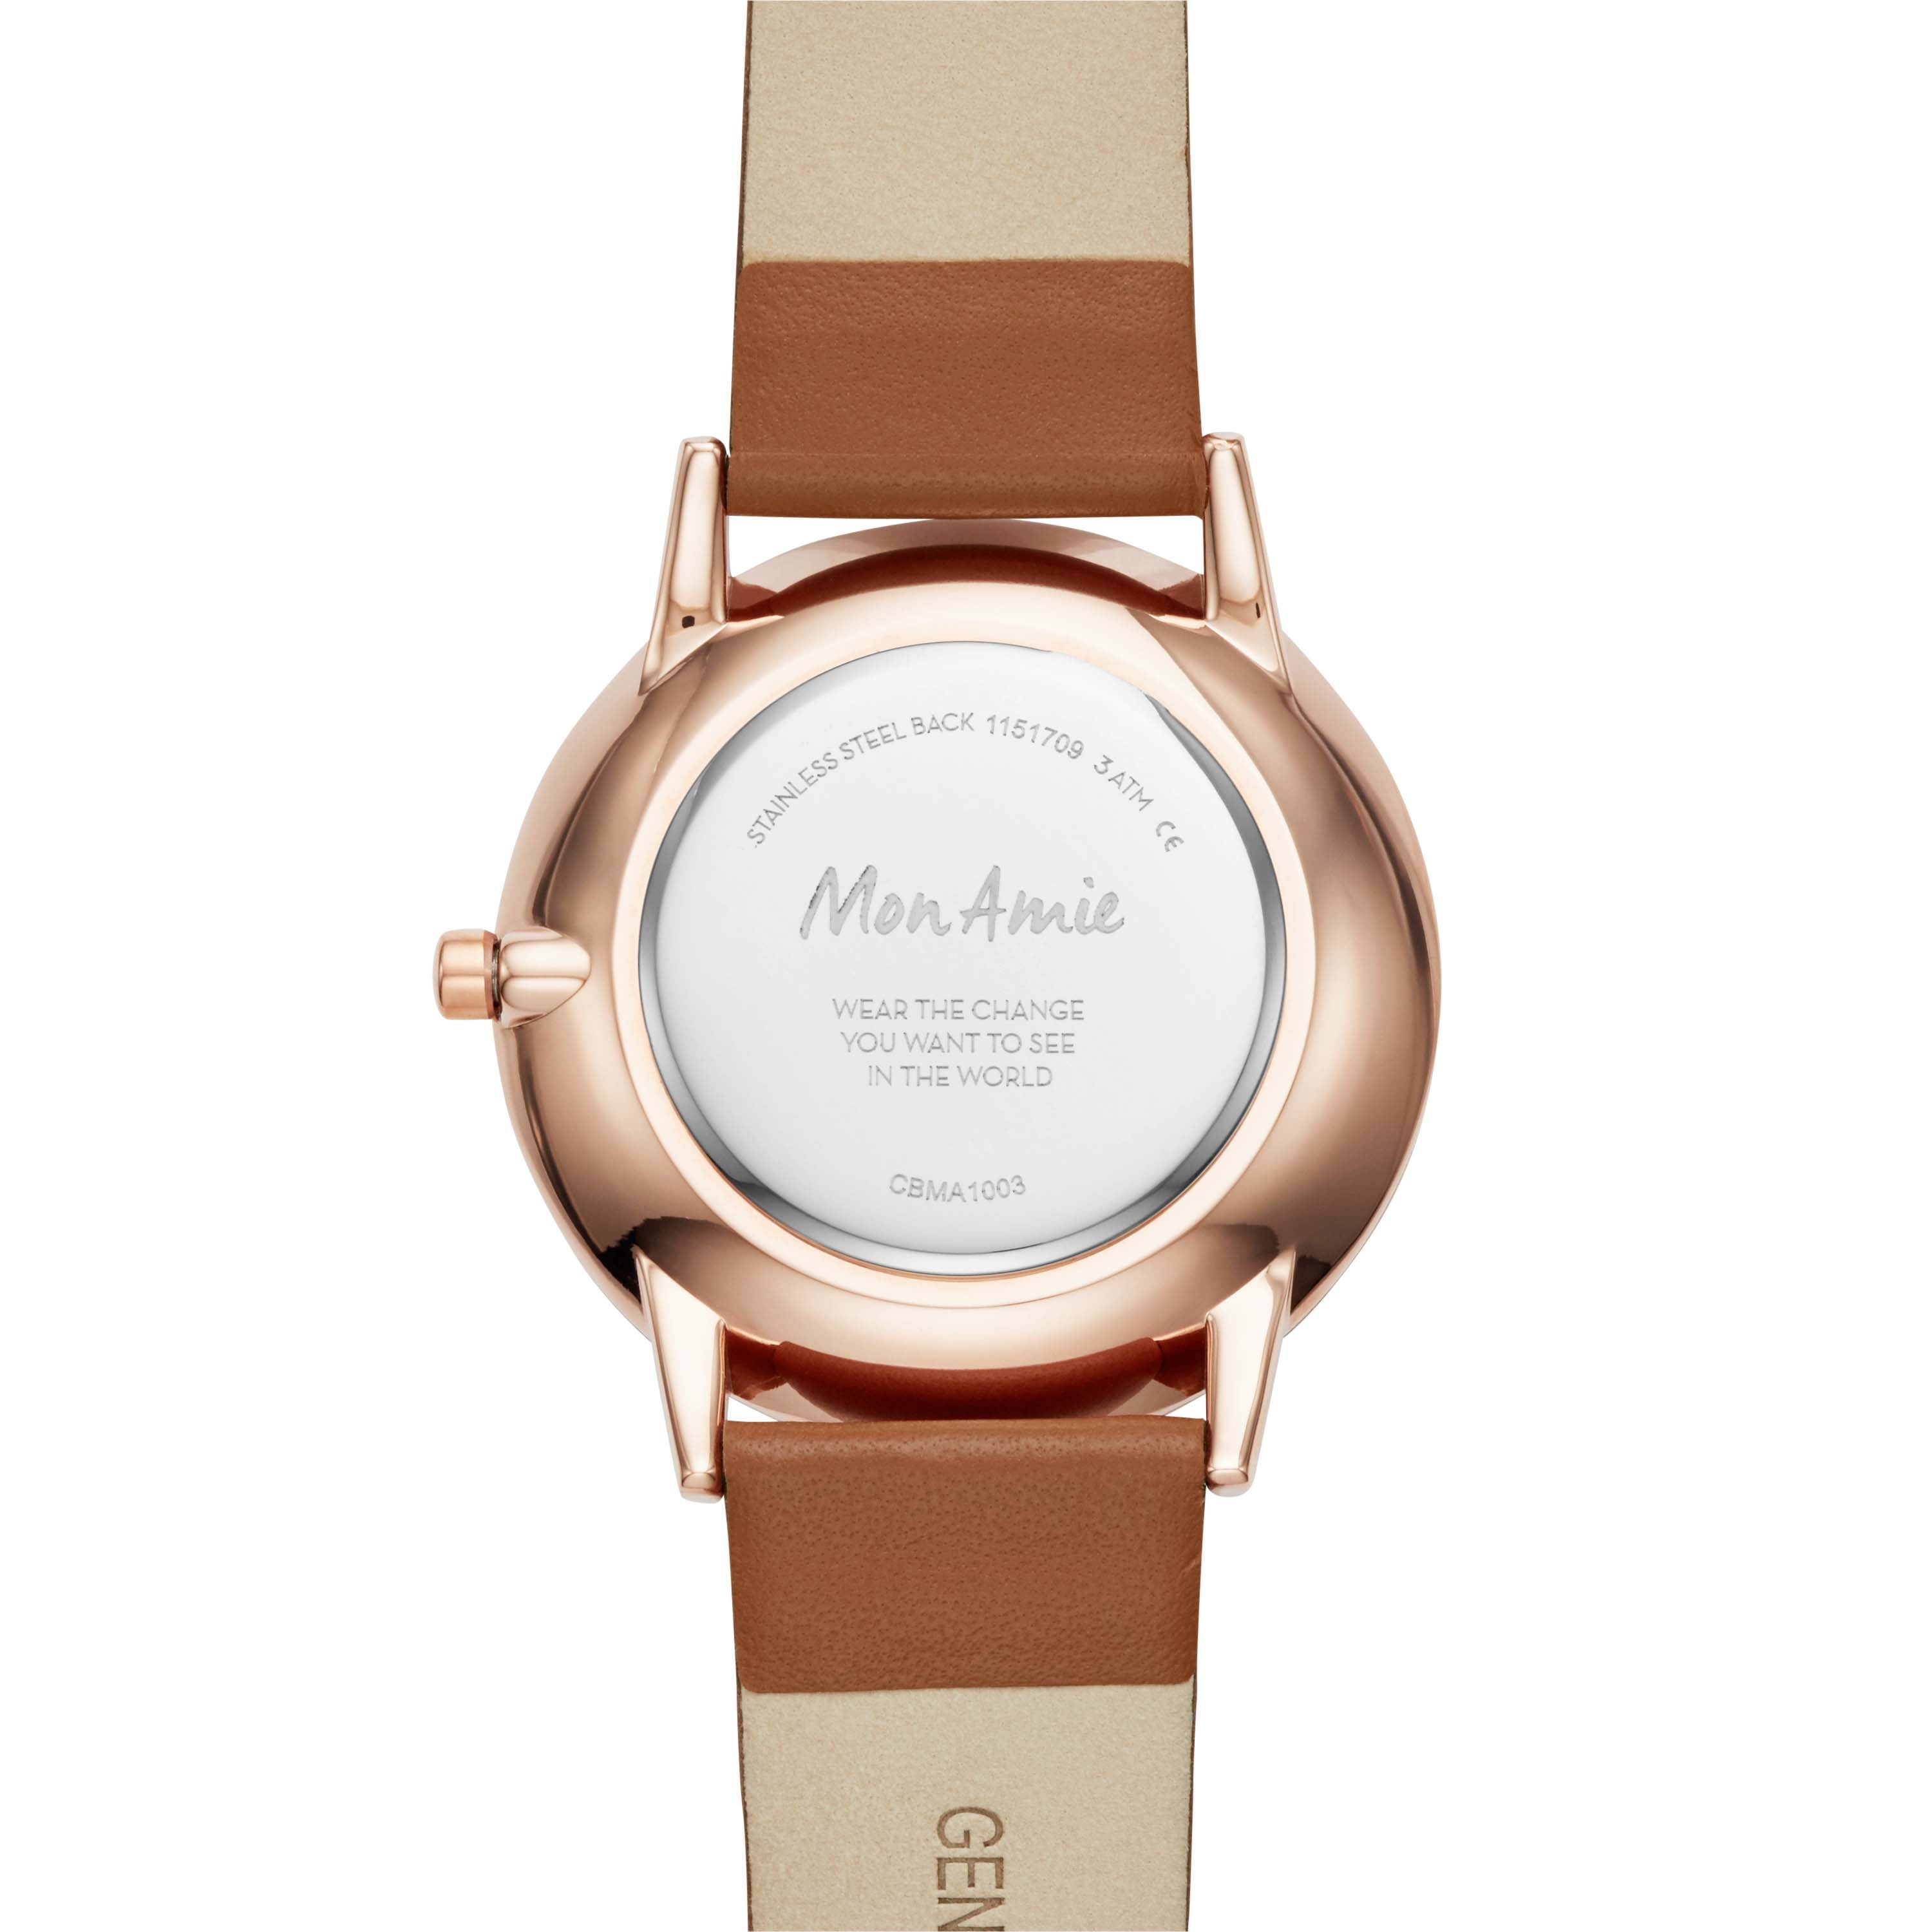 Mon Amie Launch Food Tan Leather Watch